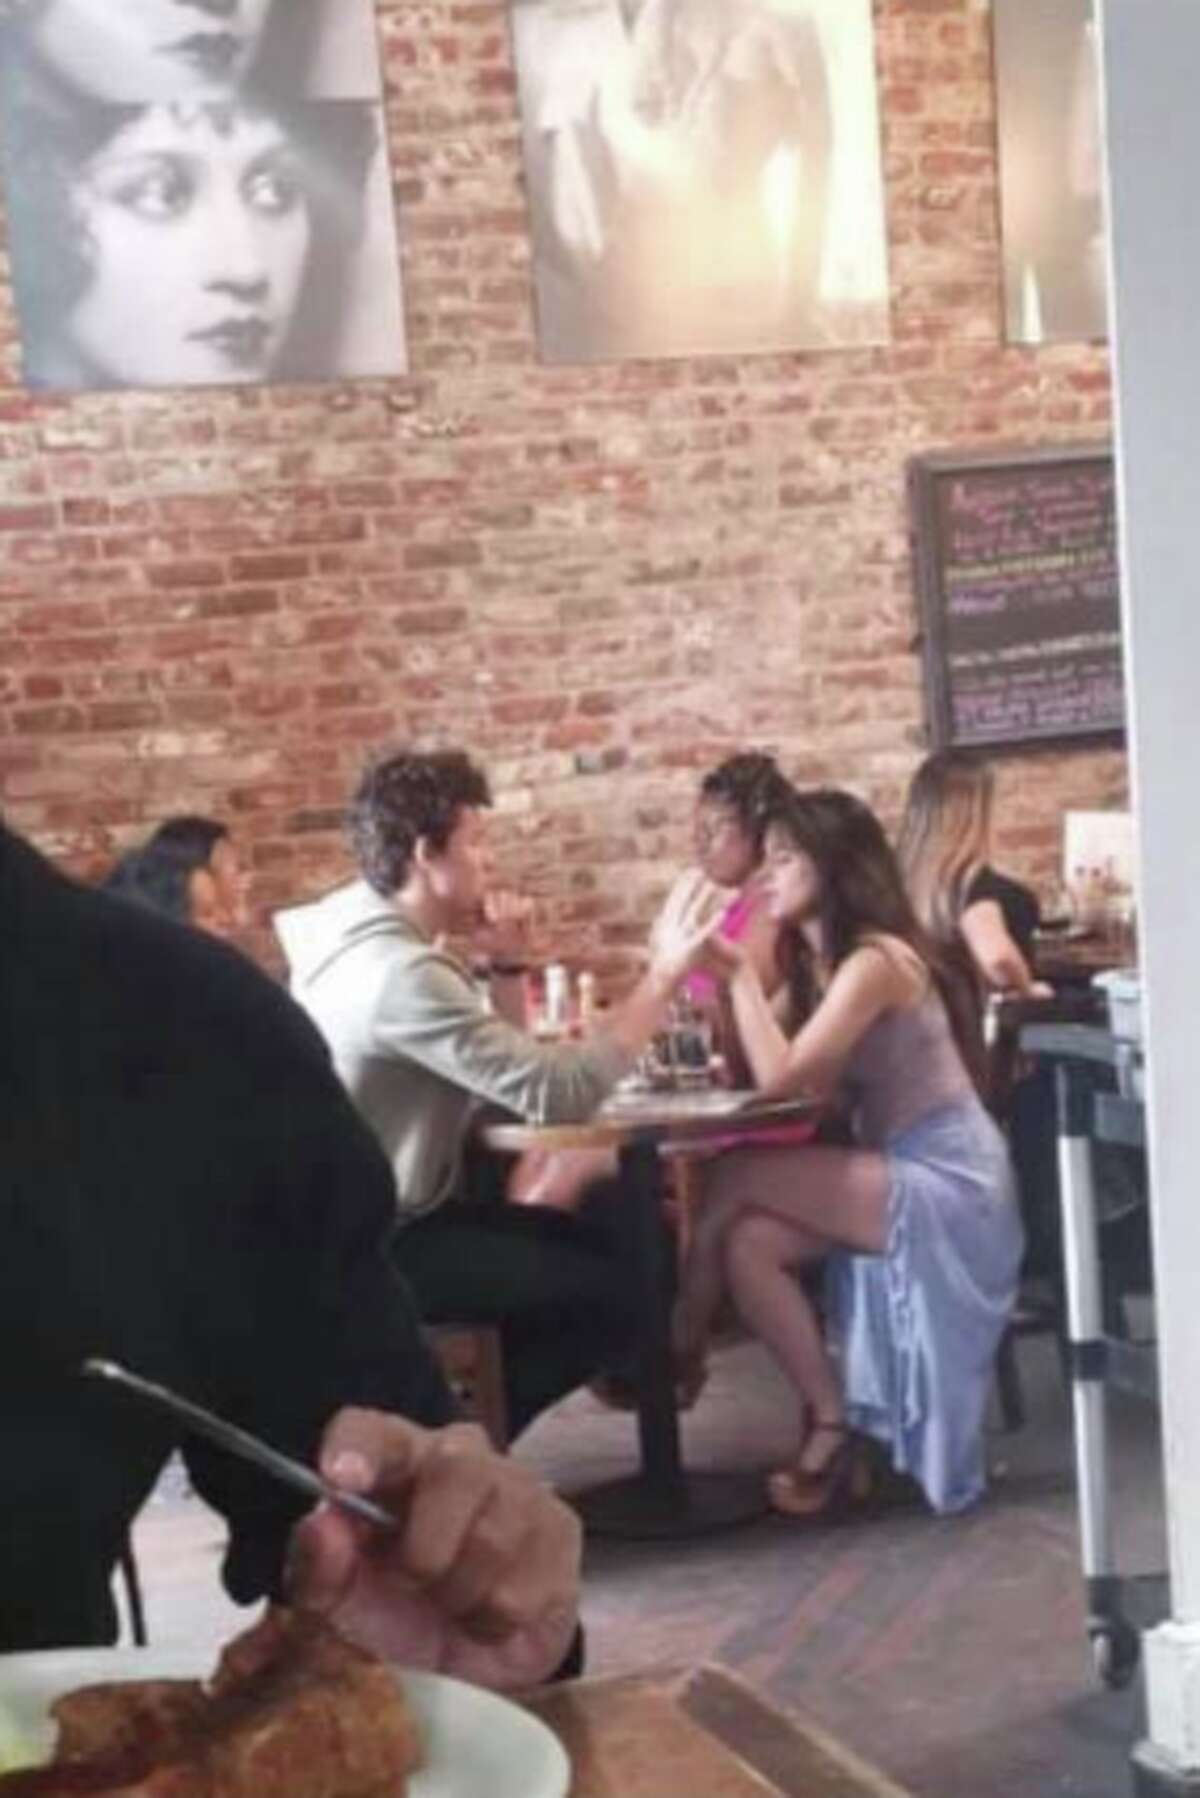 Singers Shawn Mendes and Camila Cabello were seen hopping around various SF spots, including Dottie's True Blue cafe this weekend.